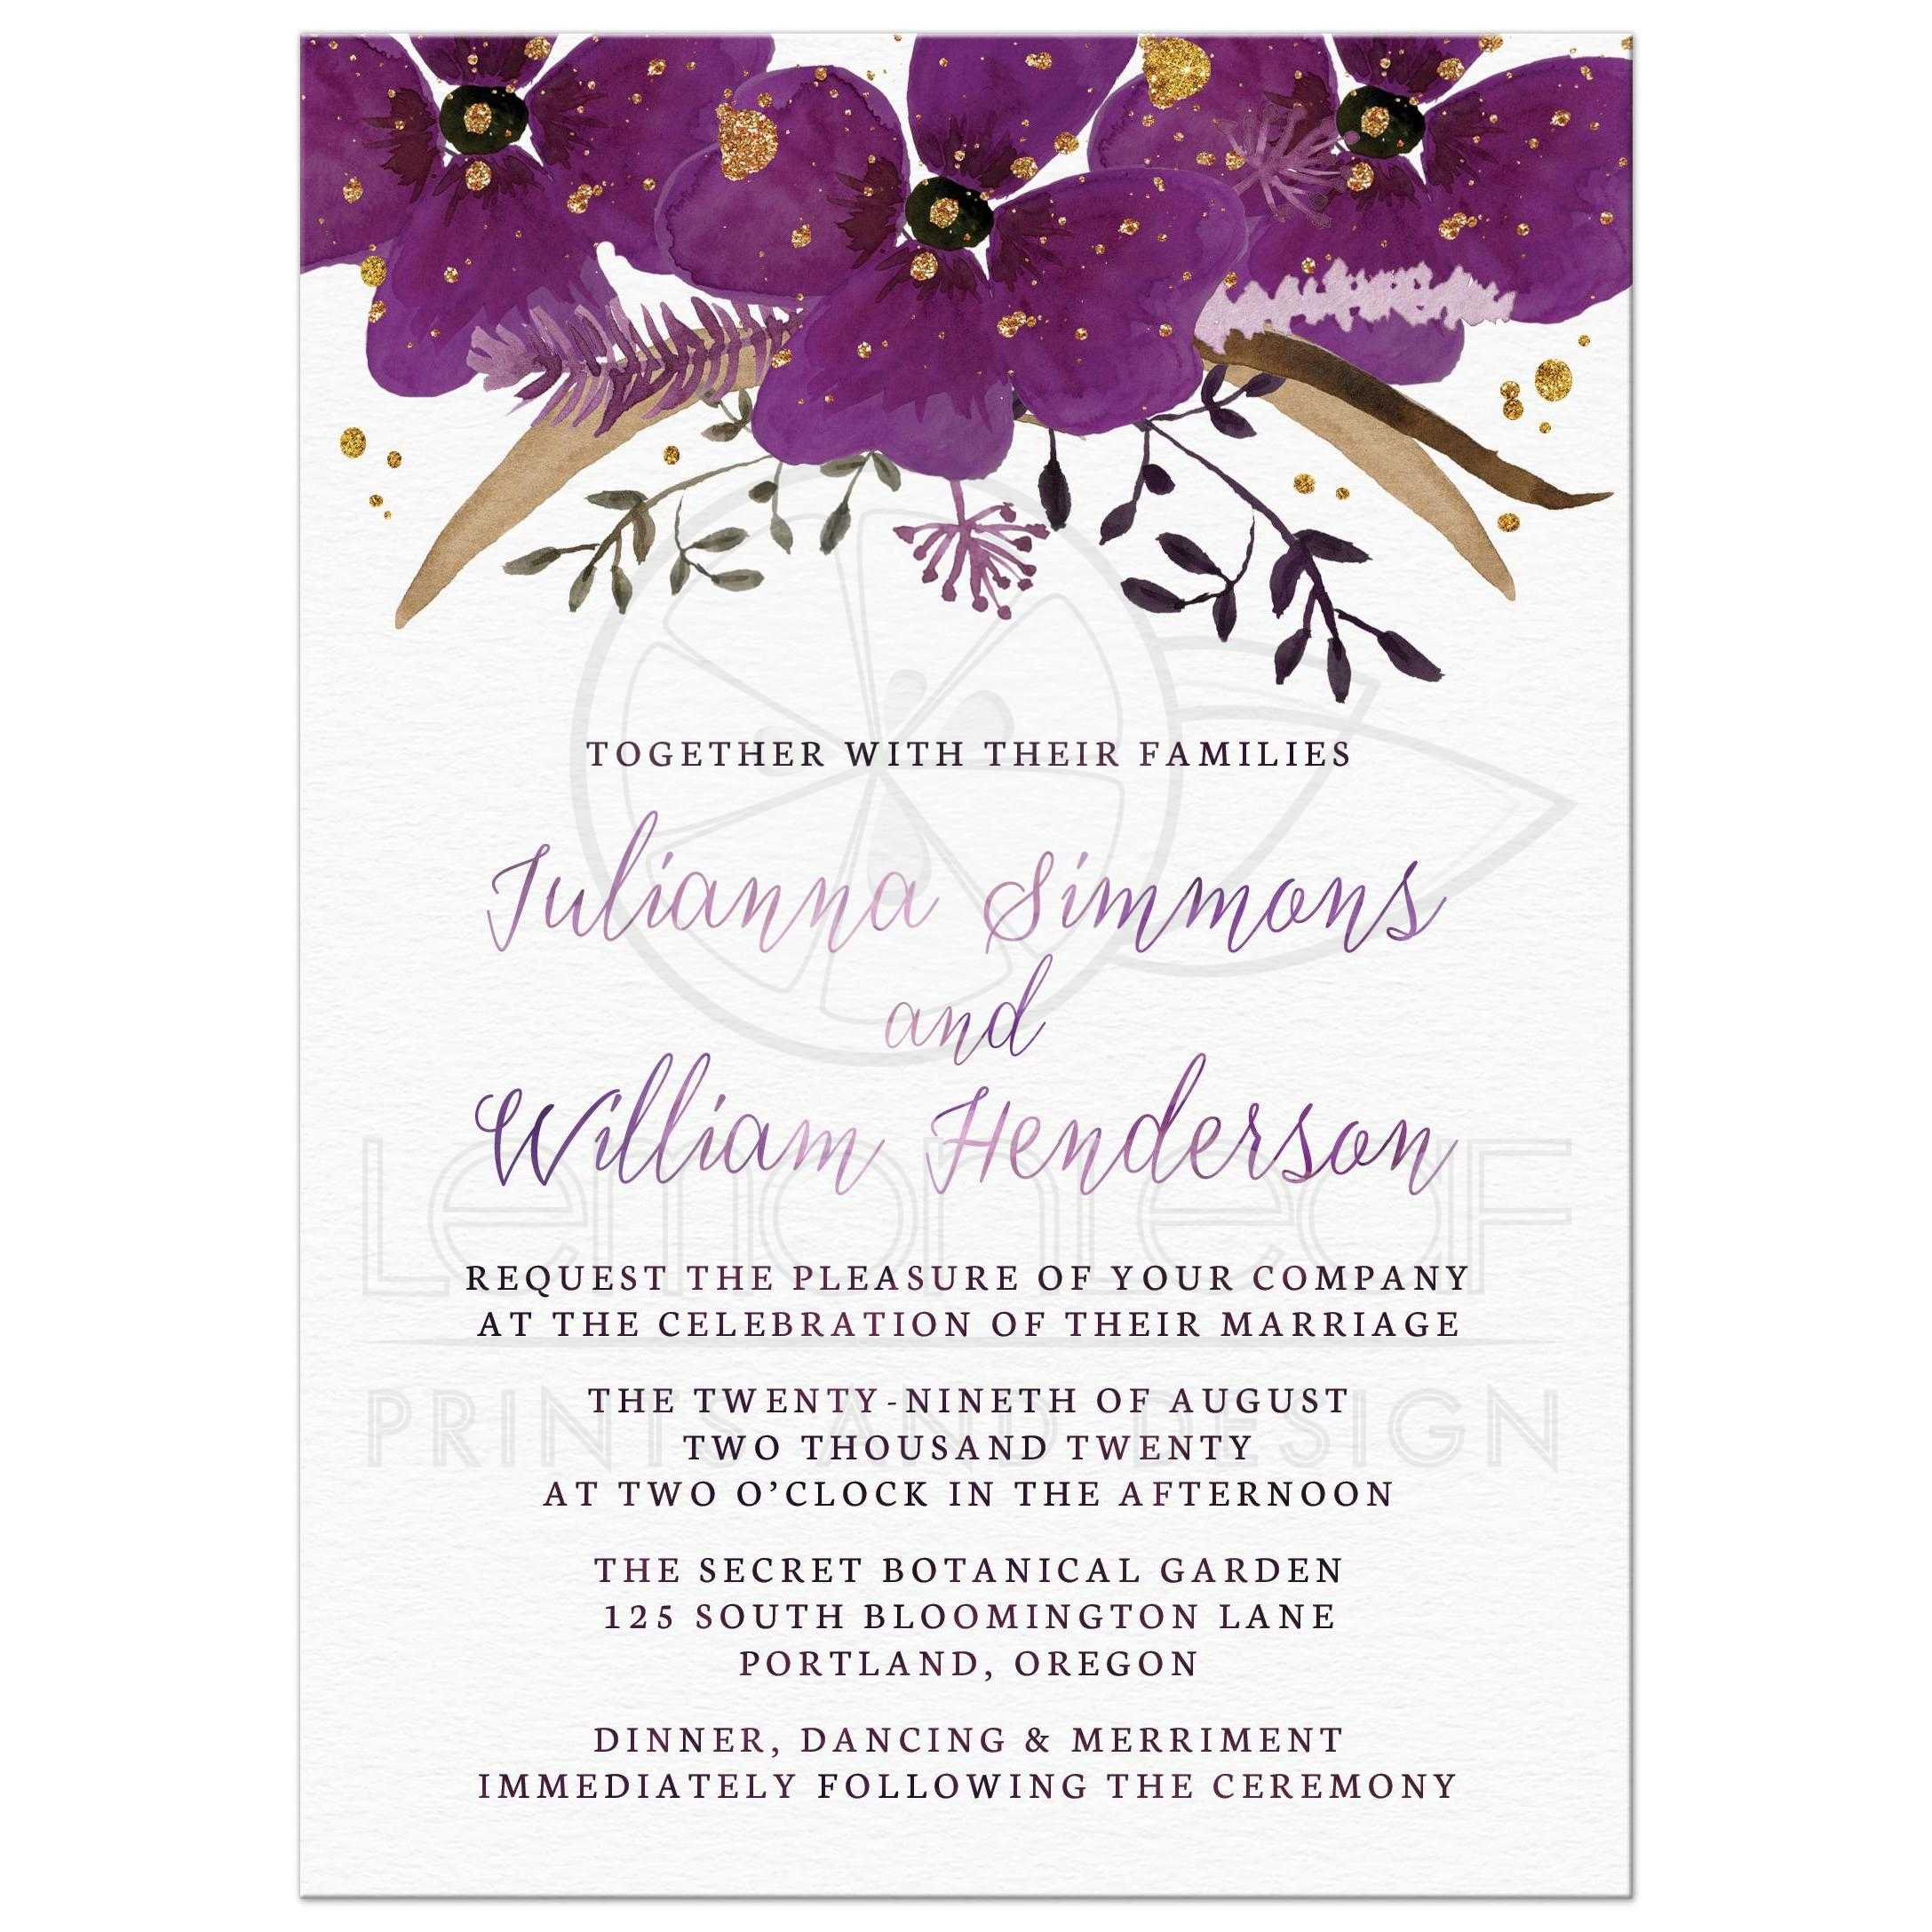 Plum Wedding Invitations was best invitation layout